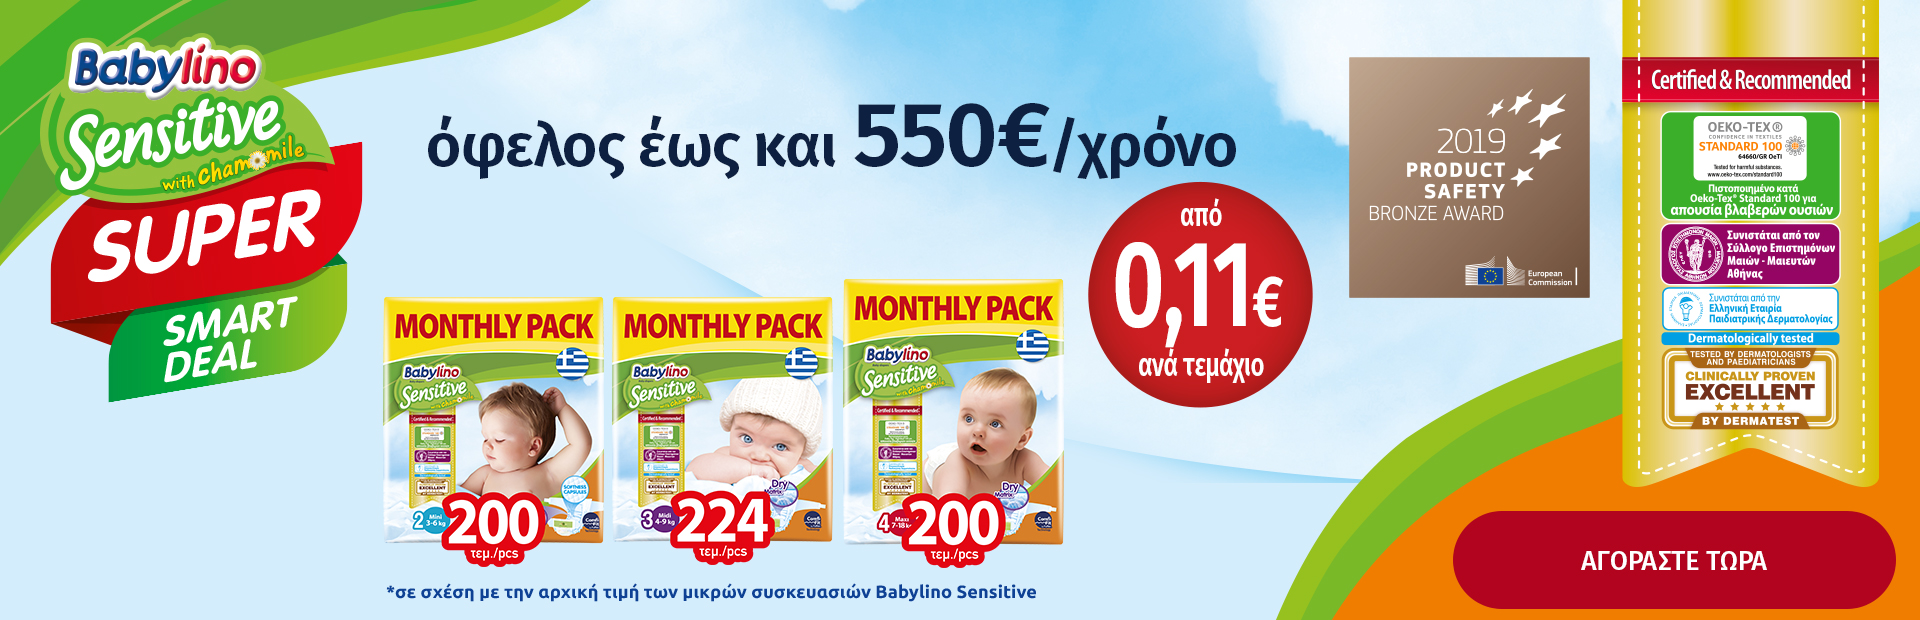 Babylino Monthly Yearly